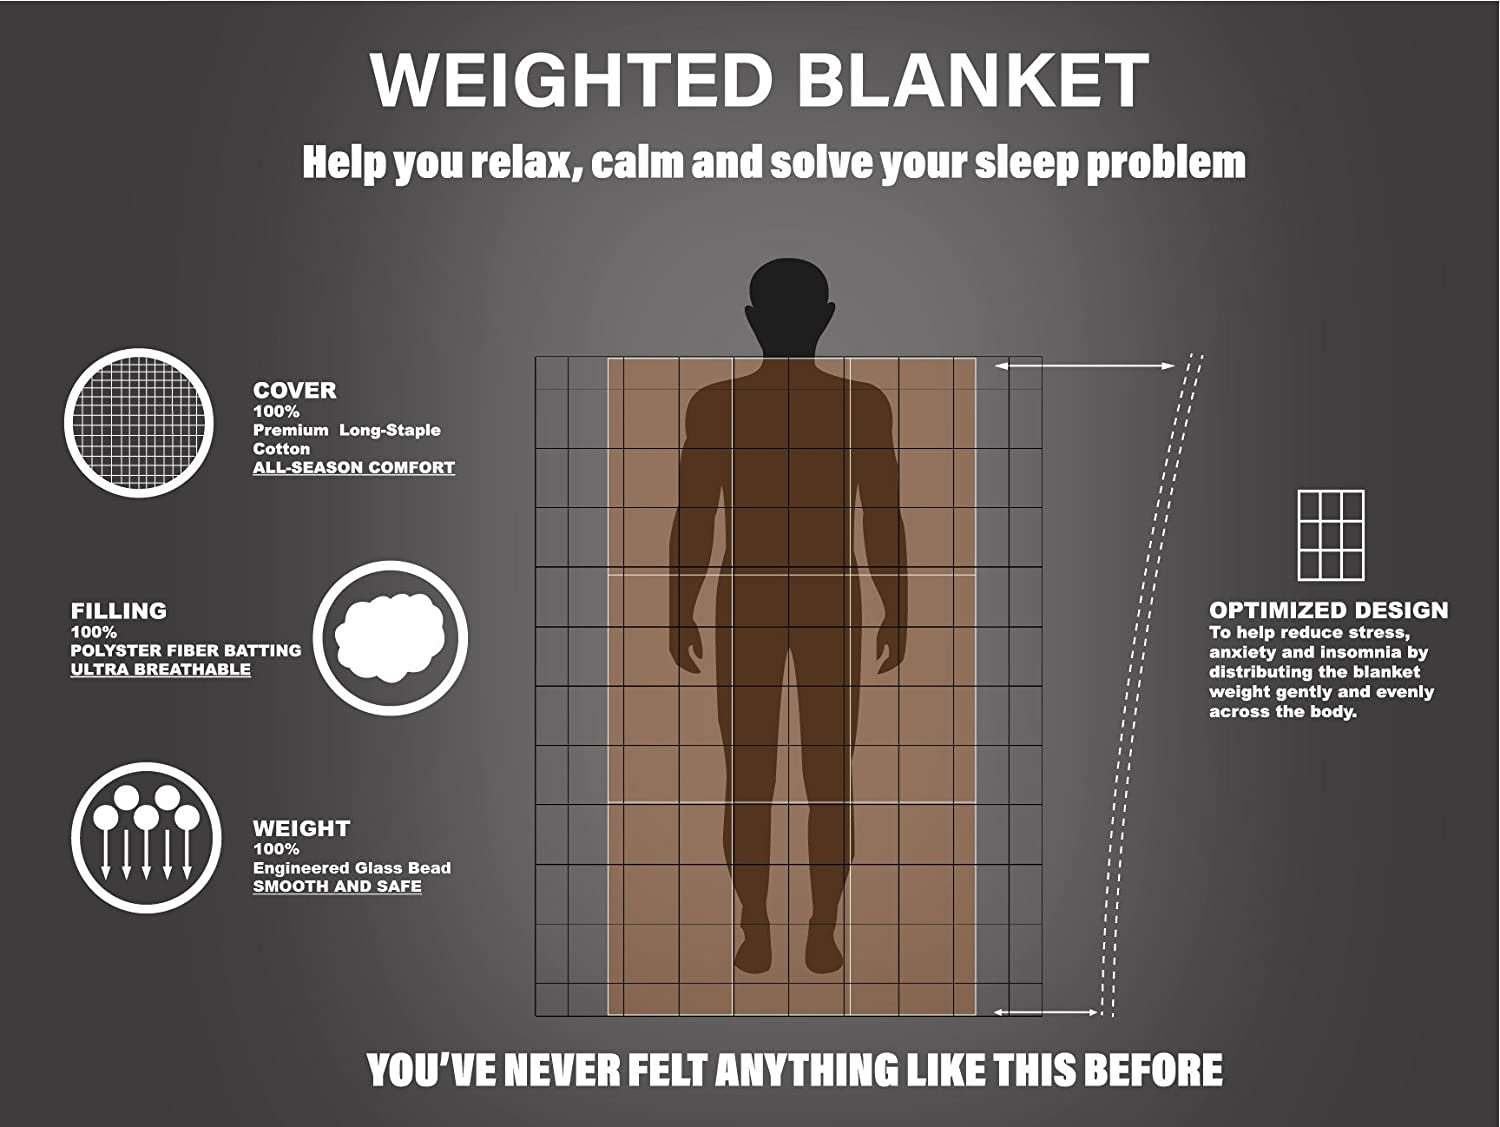 Amazon weighted blanket for adults15 lbs for 120 180 lbs amazon weighted blanket for adults15 lbs for 120 180 lbs individual fall asleep faster and sleep better great for anxiety adhd autism ocd nvjuhfo Image collections